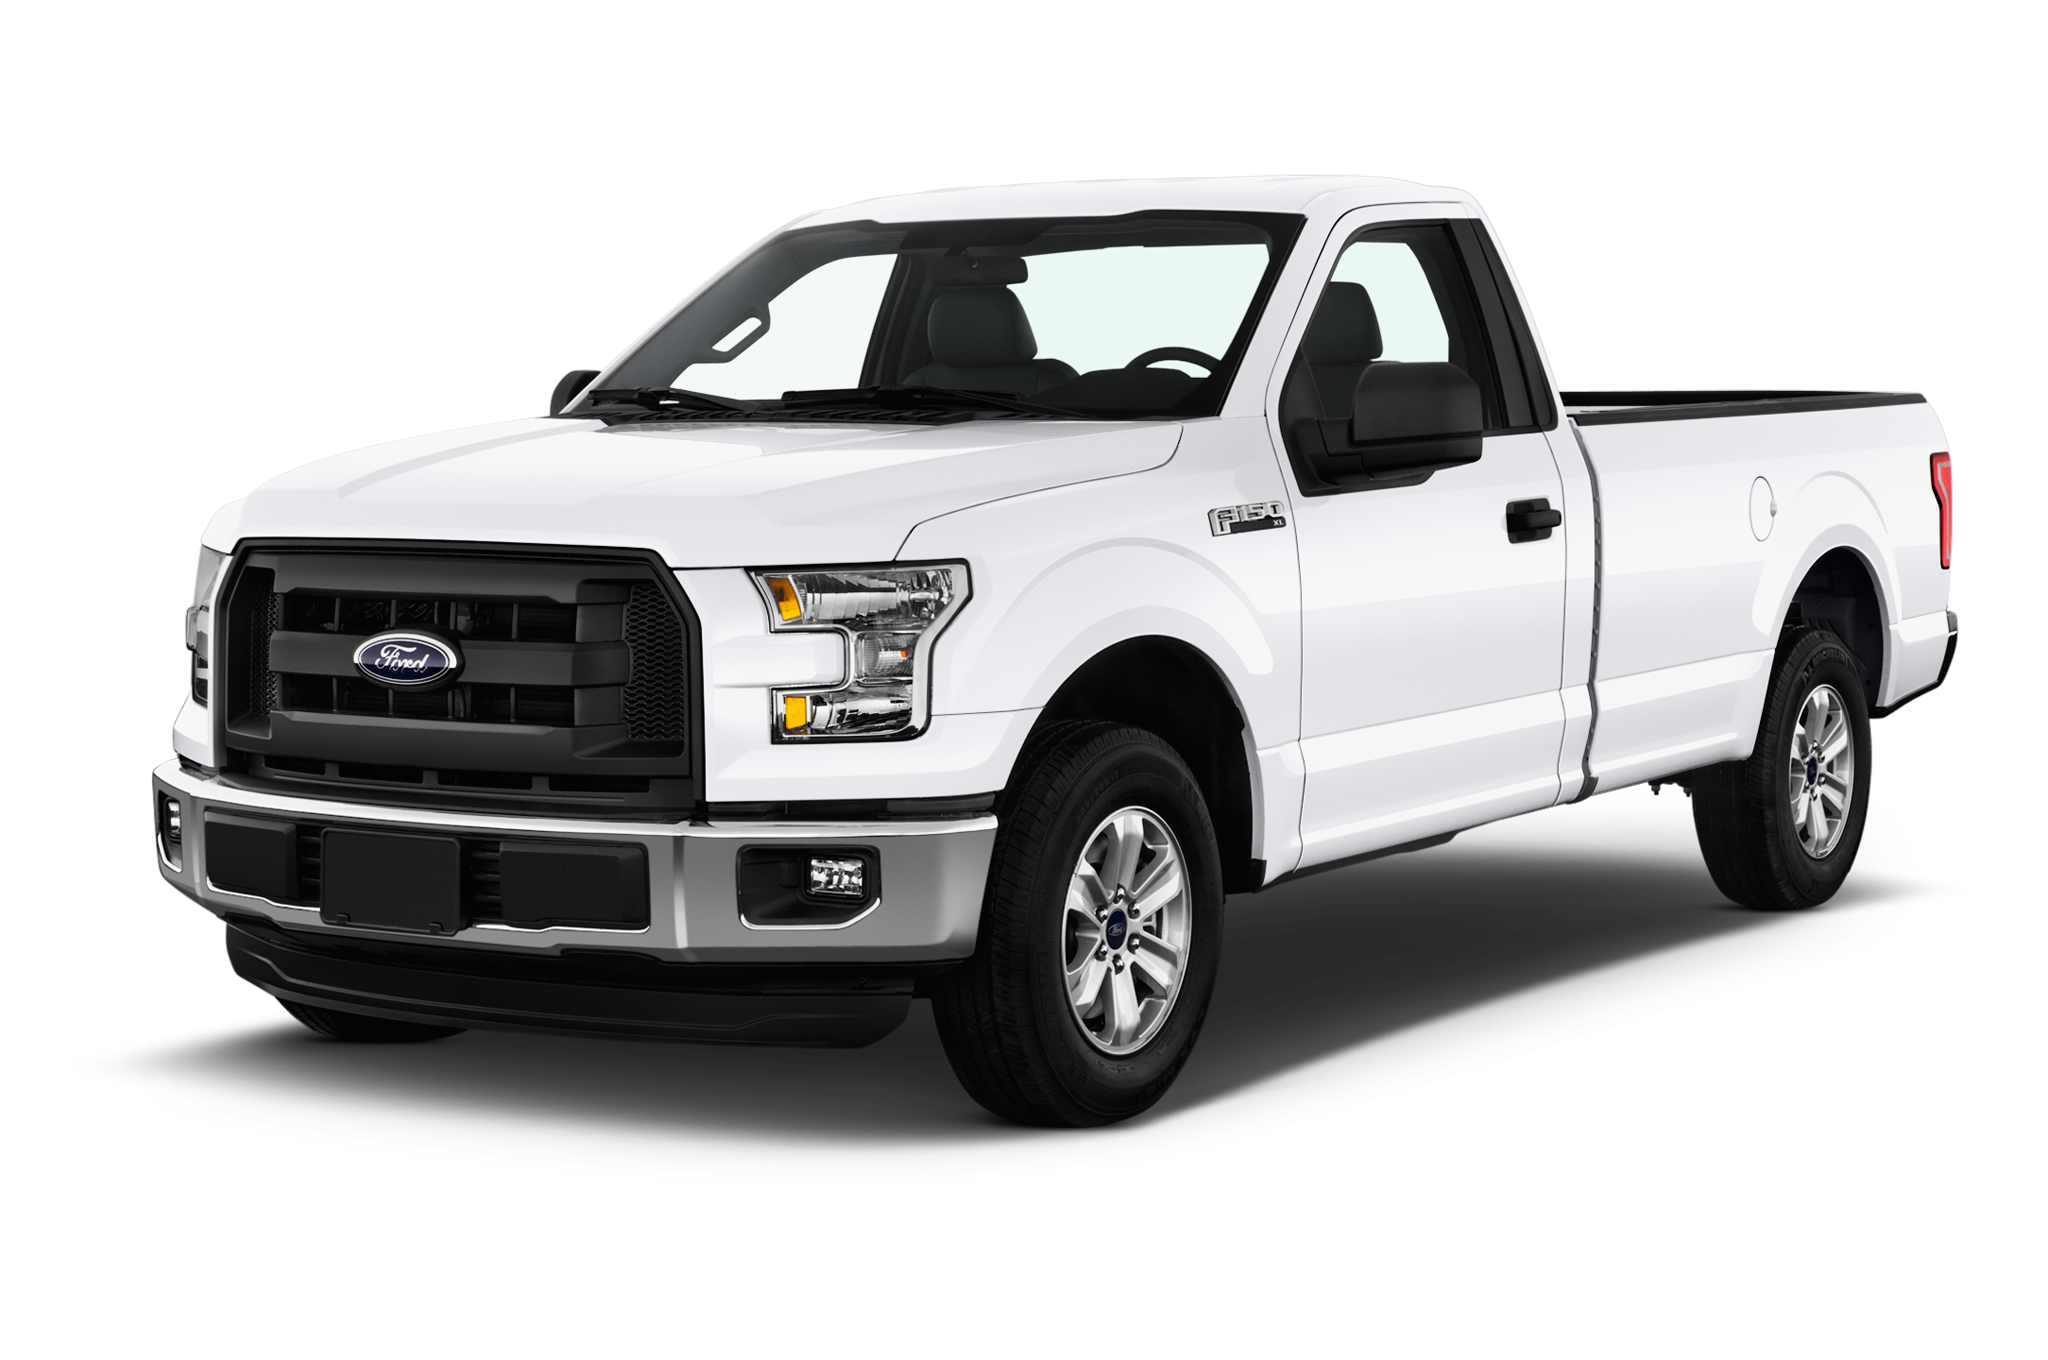 2017 ford f 150 xl 4x4 regular cab 6 1 2 box pricing msn autos. Black Bedroom Furniture Sets. Home Design Ideas